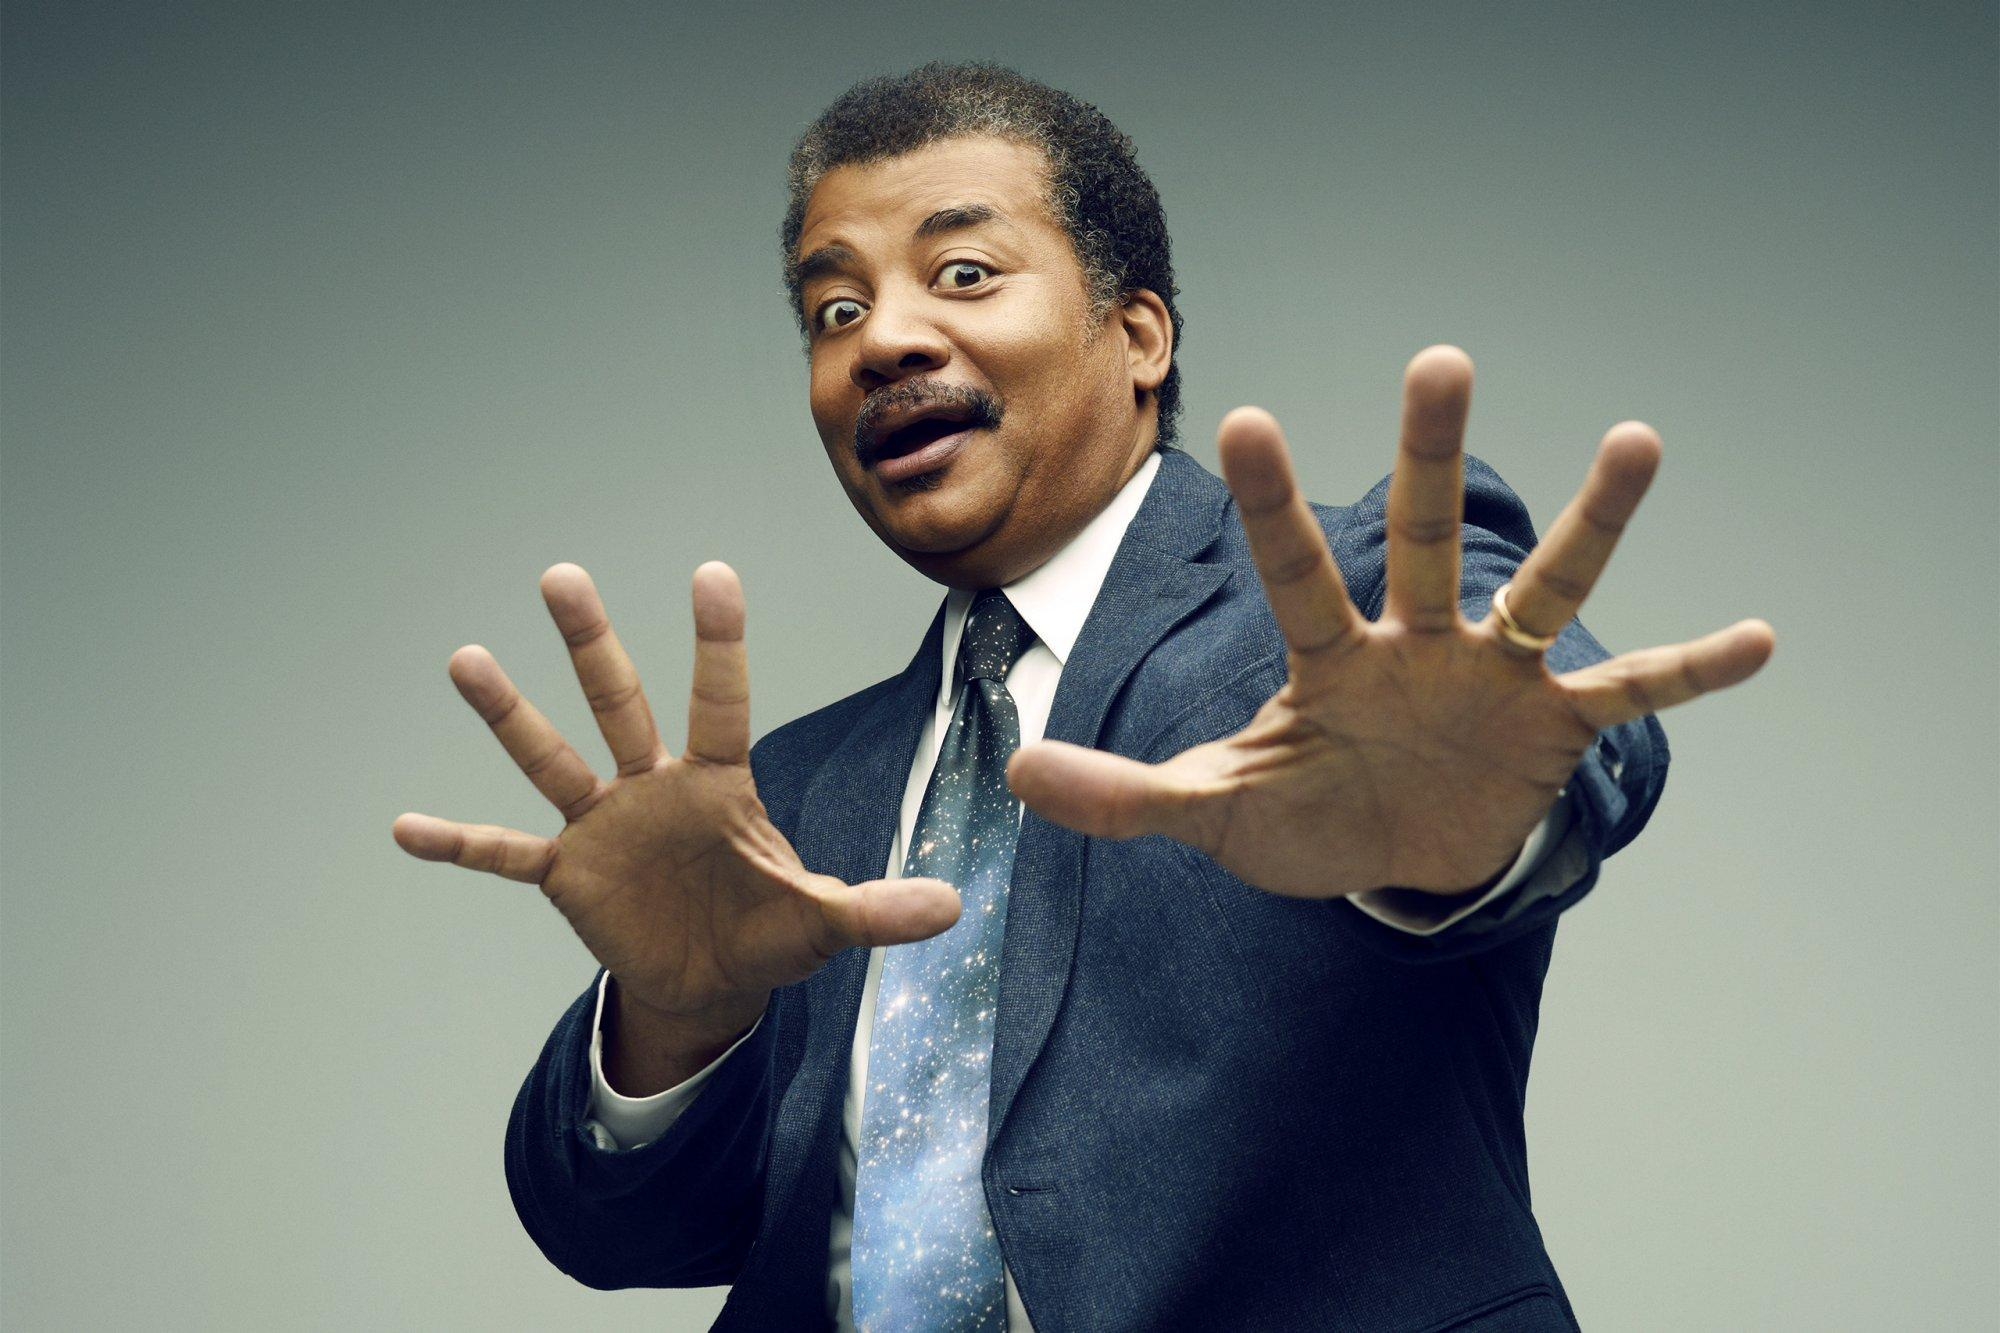 Neil DeGrasse Tyson Why Islam Rejects Science